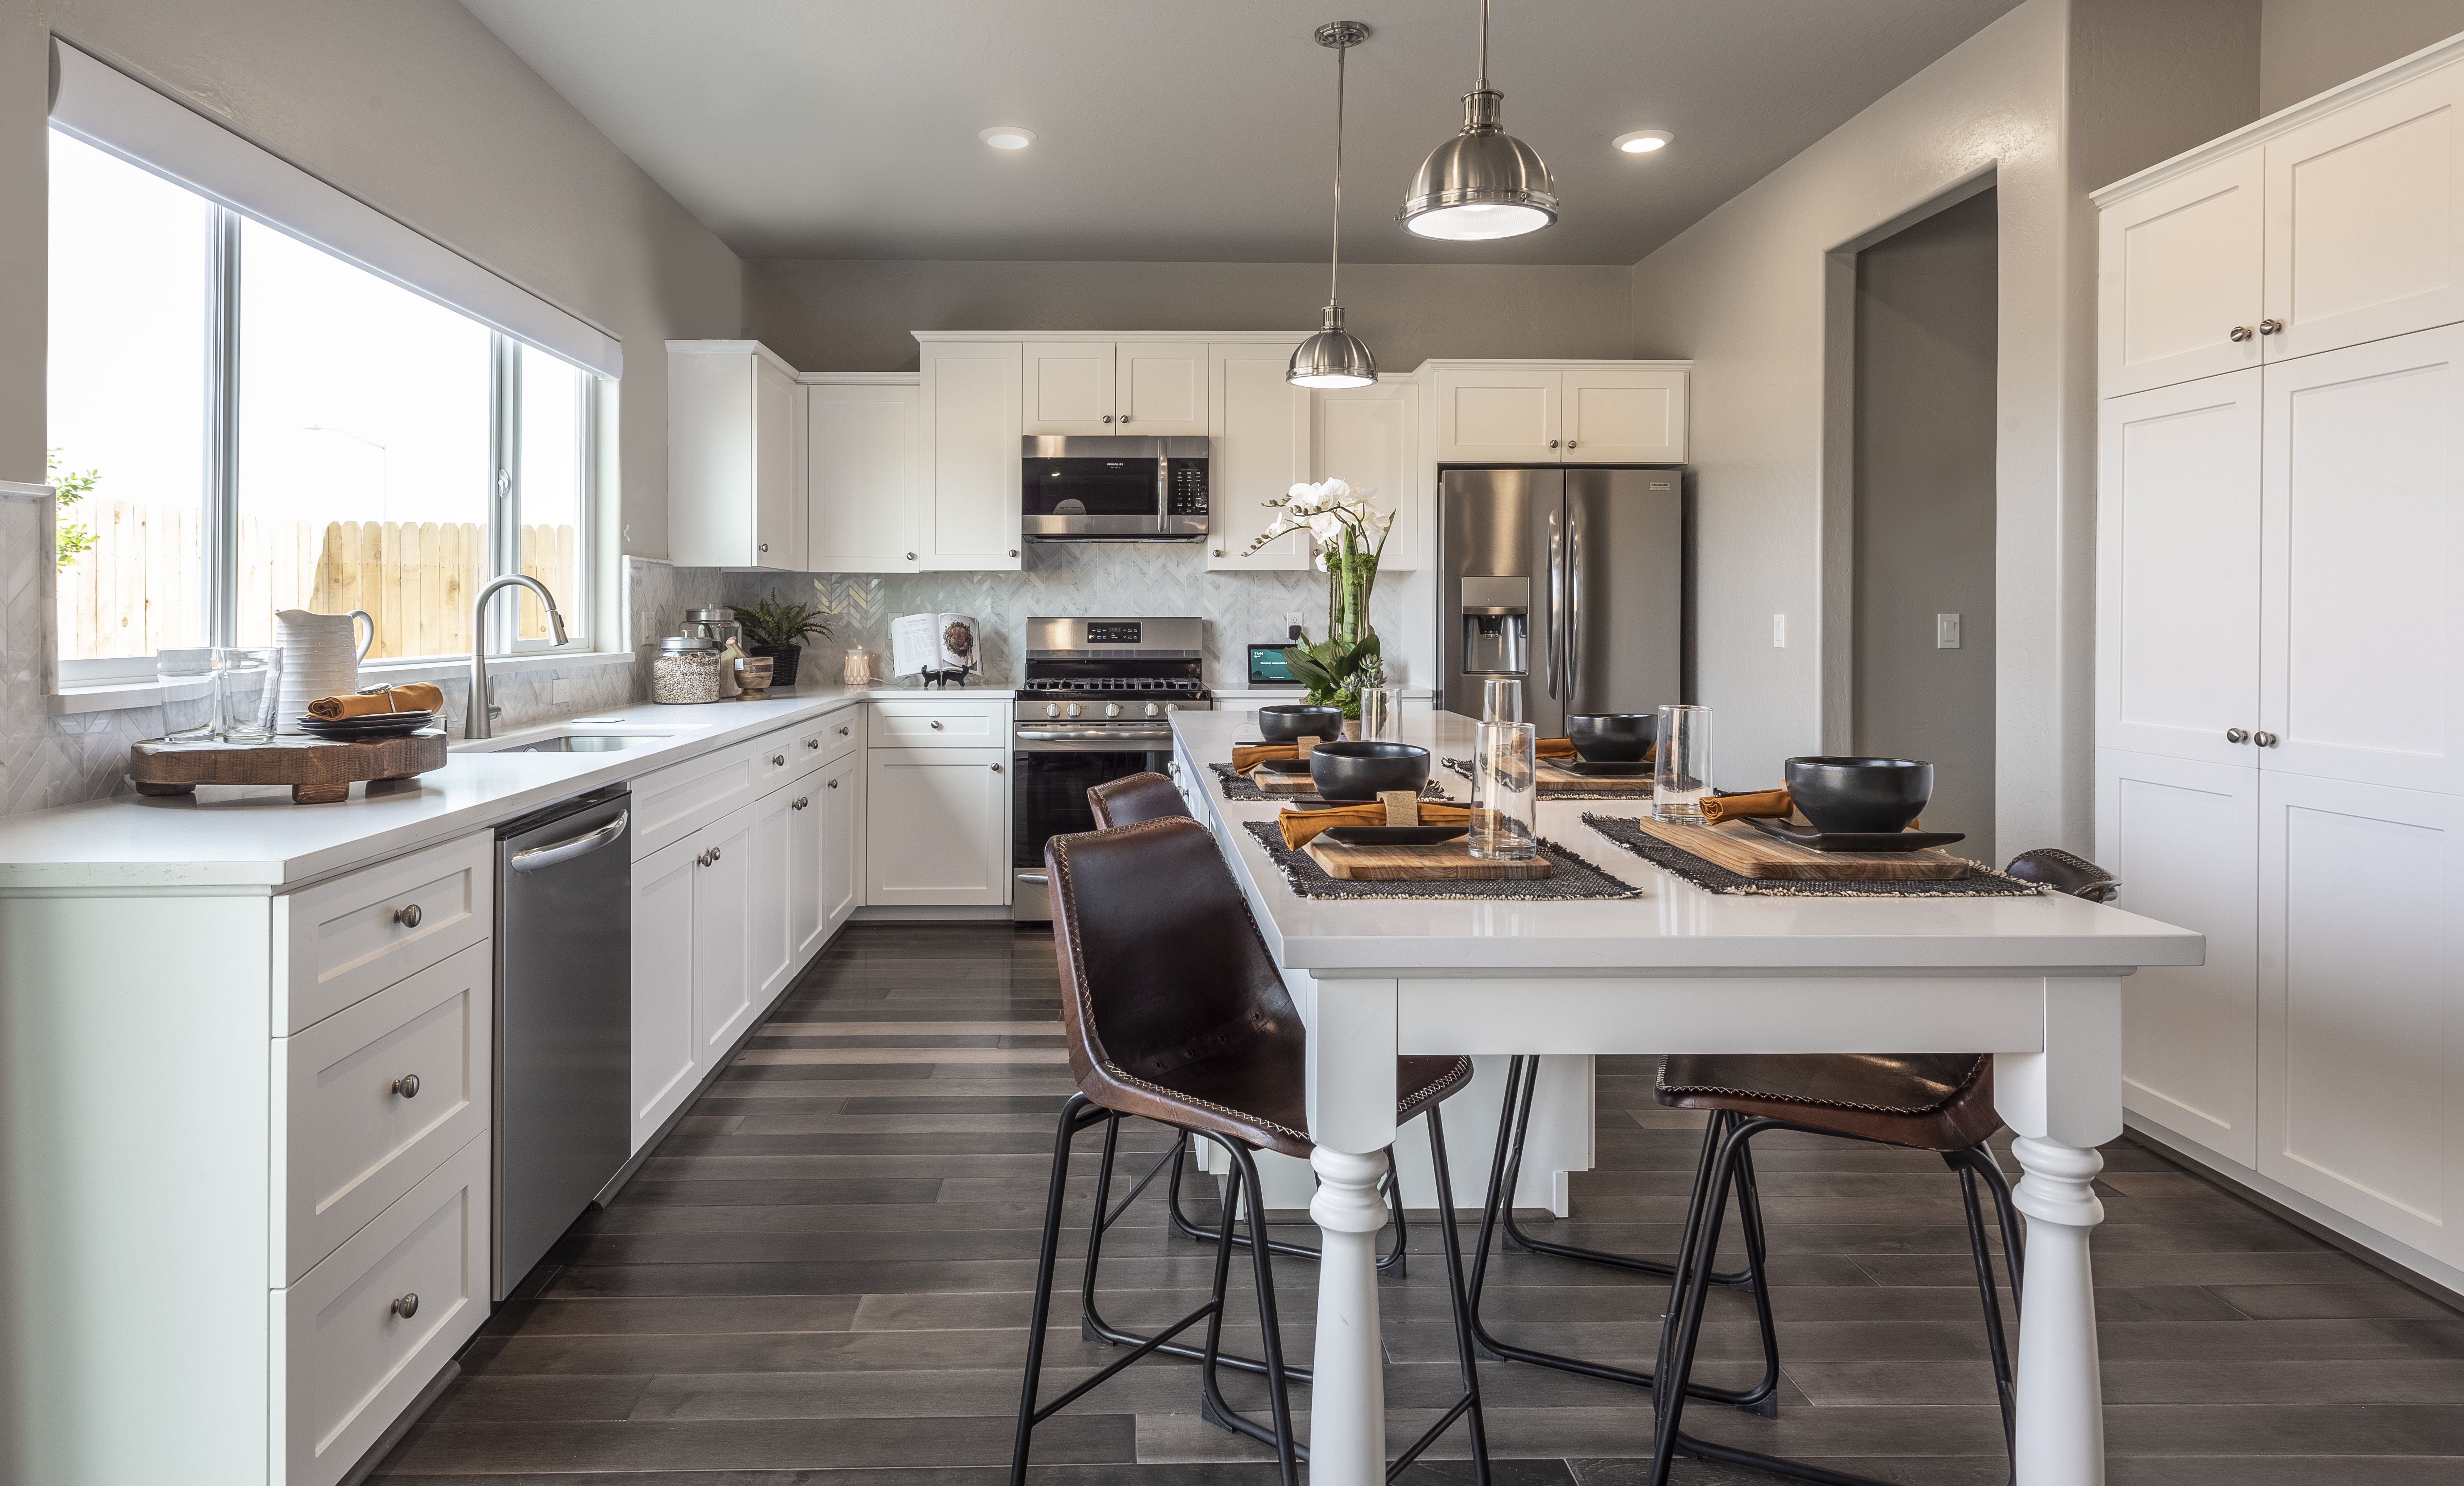 White Kitchen Cabinets With Quartz Counter Tops And Herringbone Backsplash Modern Farmhouse Decor With Wood Mu In 2020 New Homes For Sale Open Concept Home New Homes